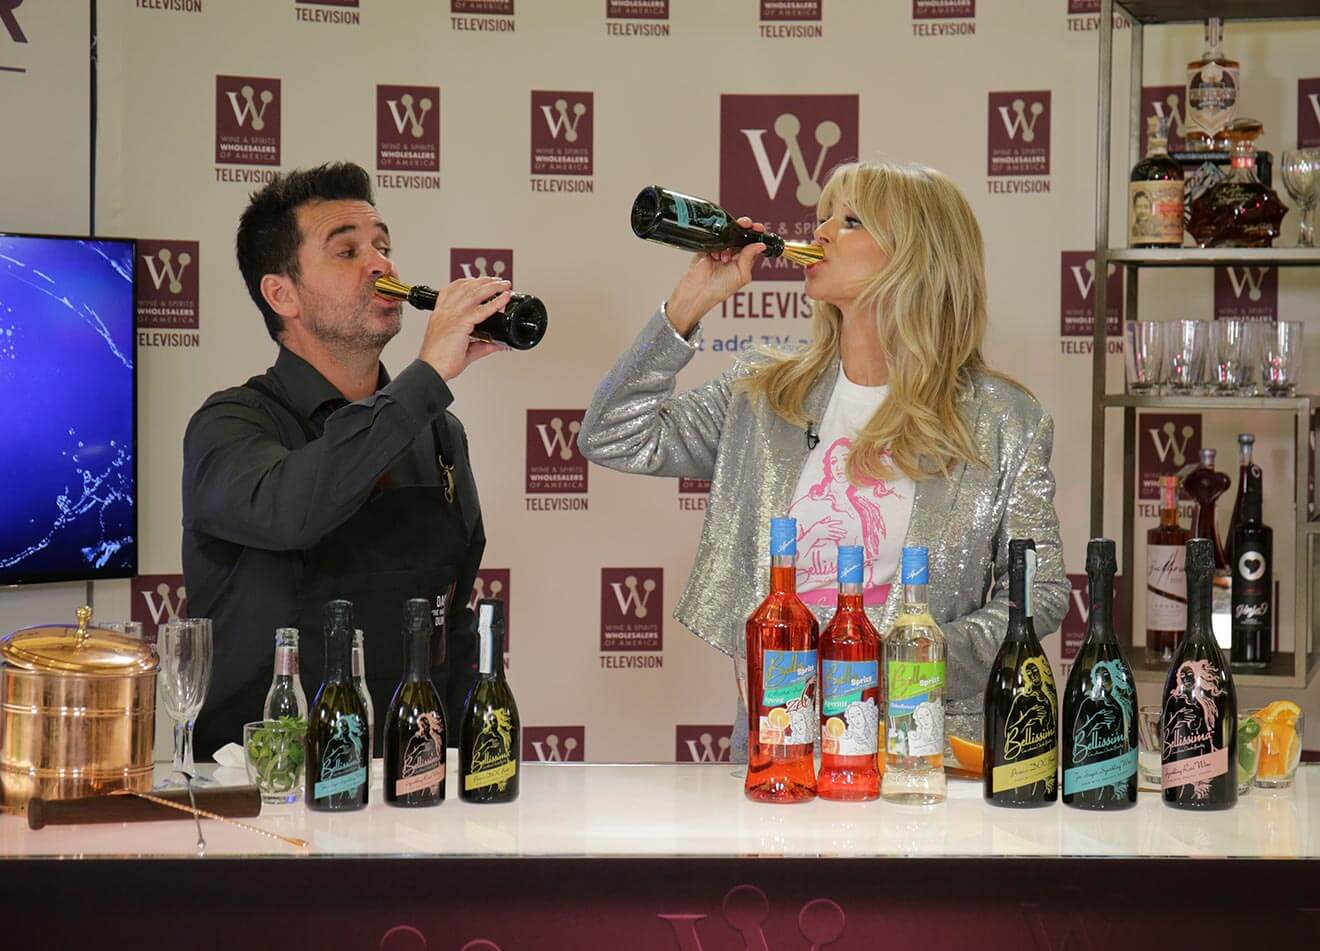 Christie Brinkley with Her Line of Bellissima Wine